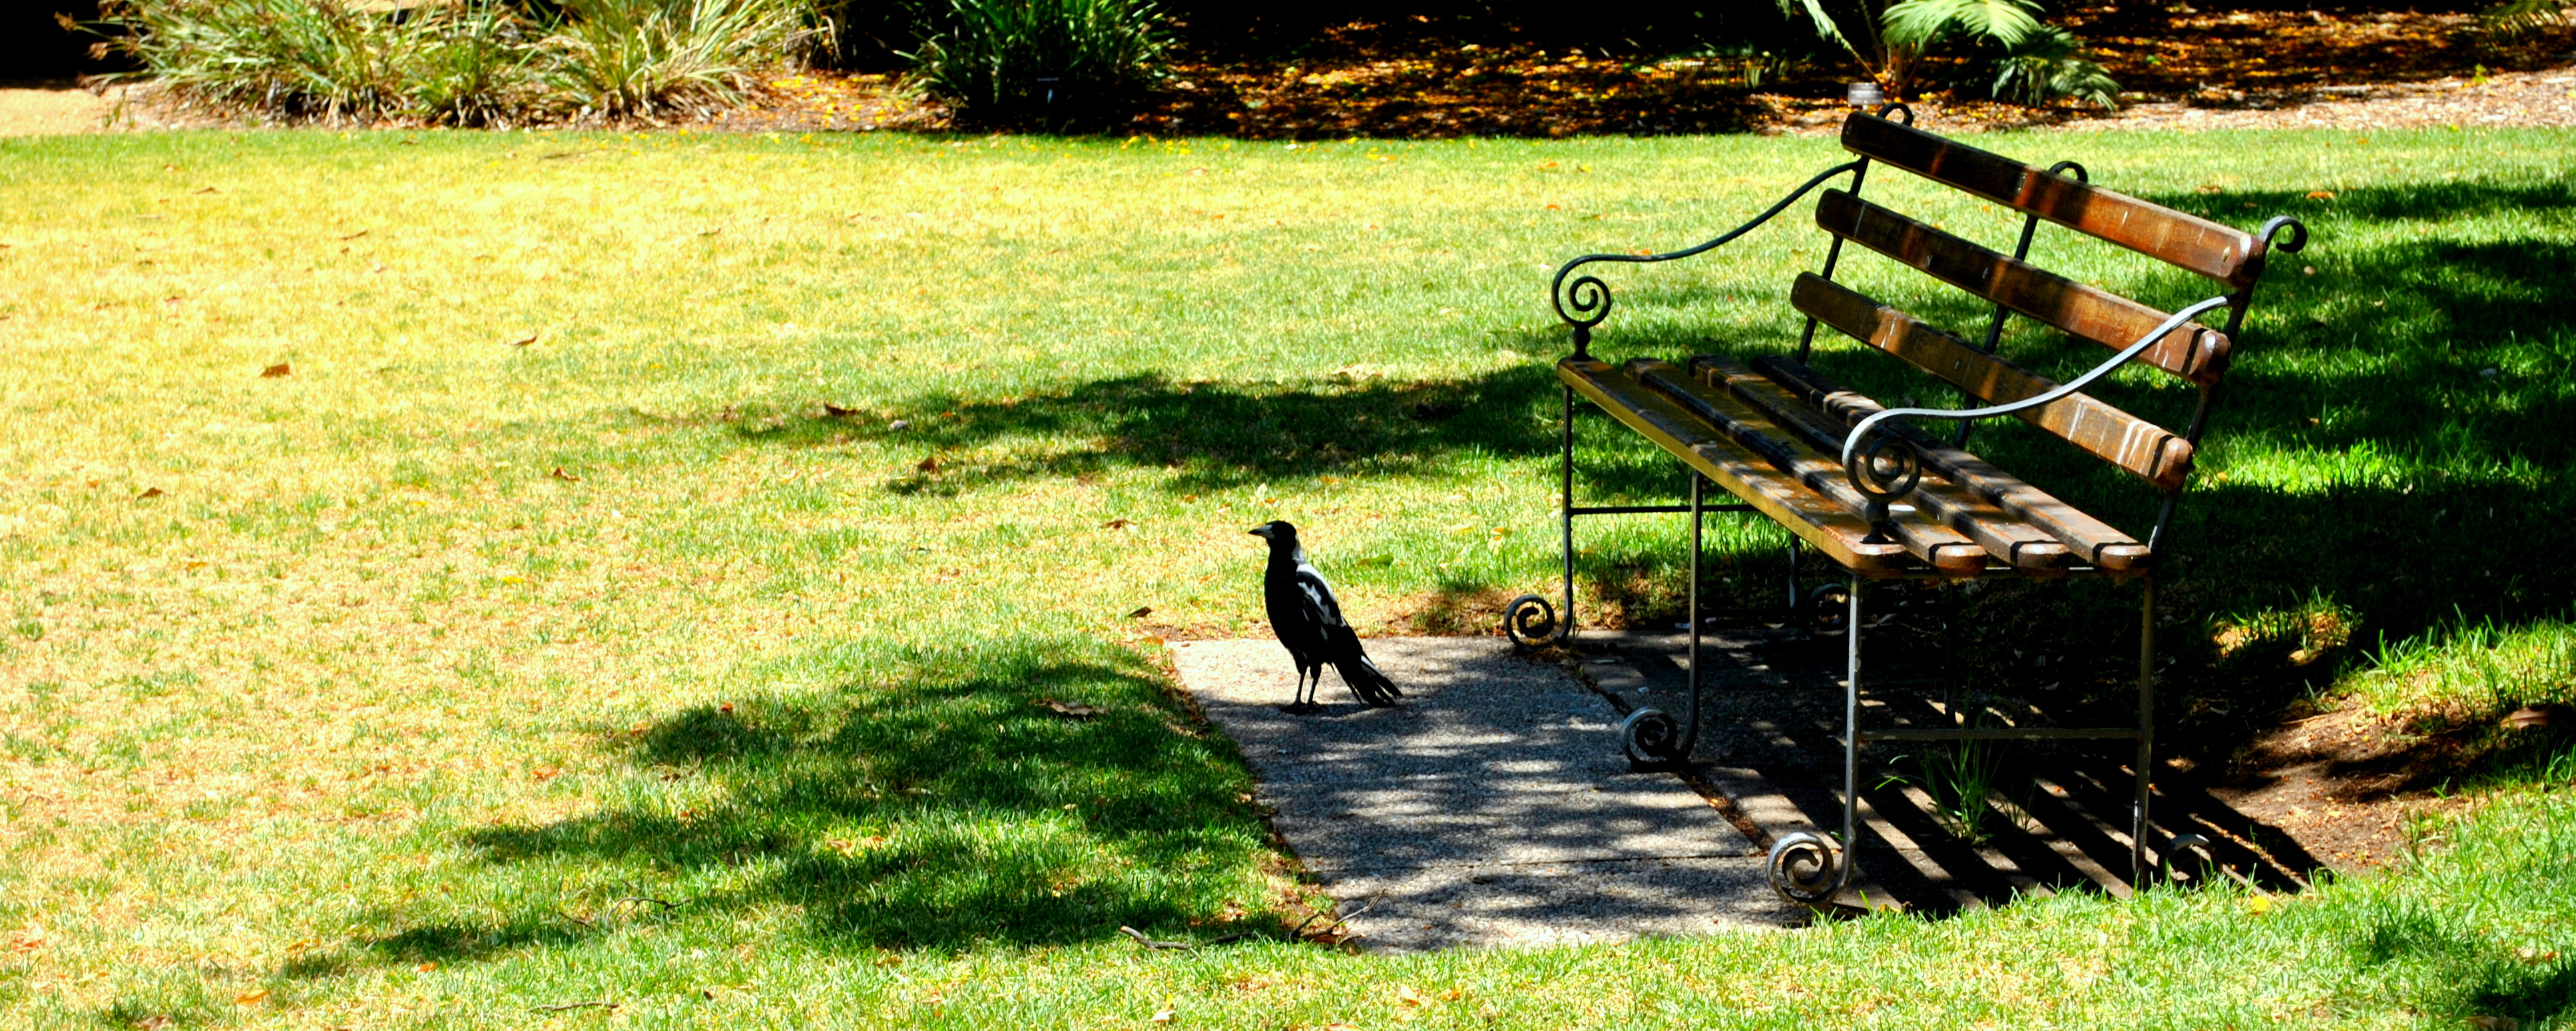 Bird and the Bench, Animal, Bench, Bird, Crow, HQ Photo